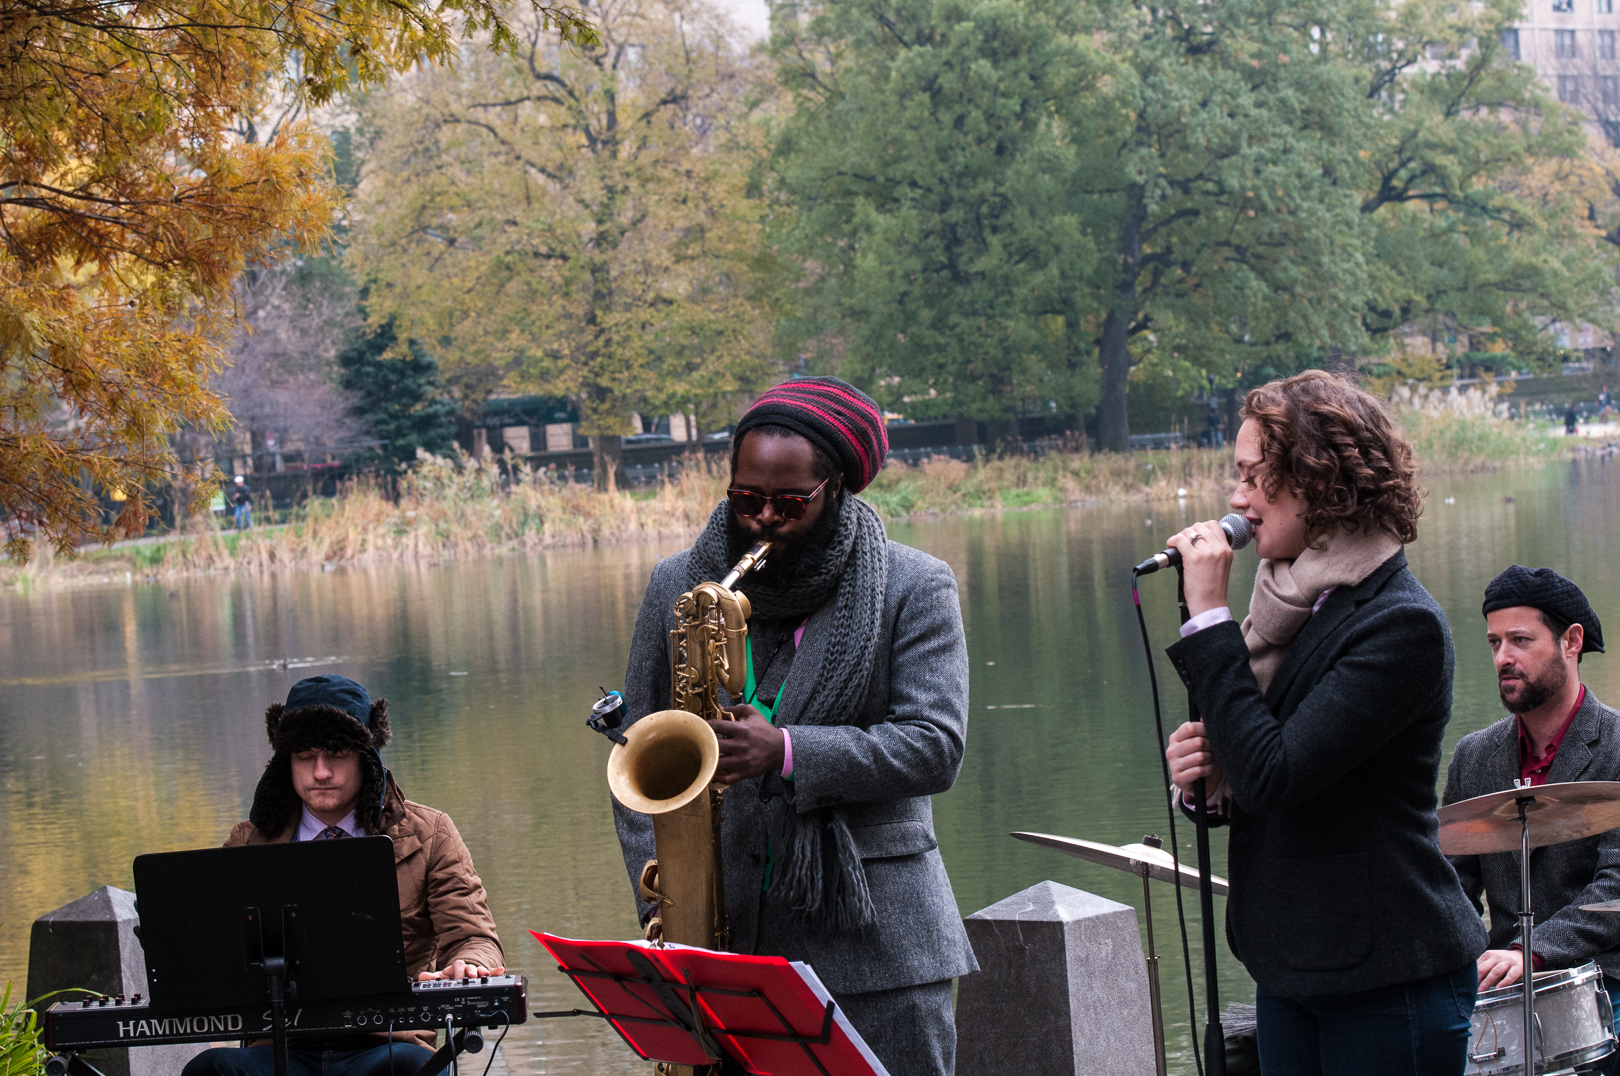 Andre Pivec, Jason Marshall and Haley Gardner at Jazz and Colors in Central Park